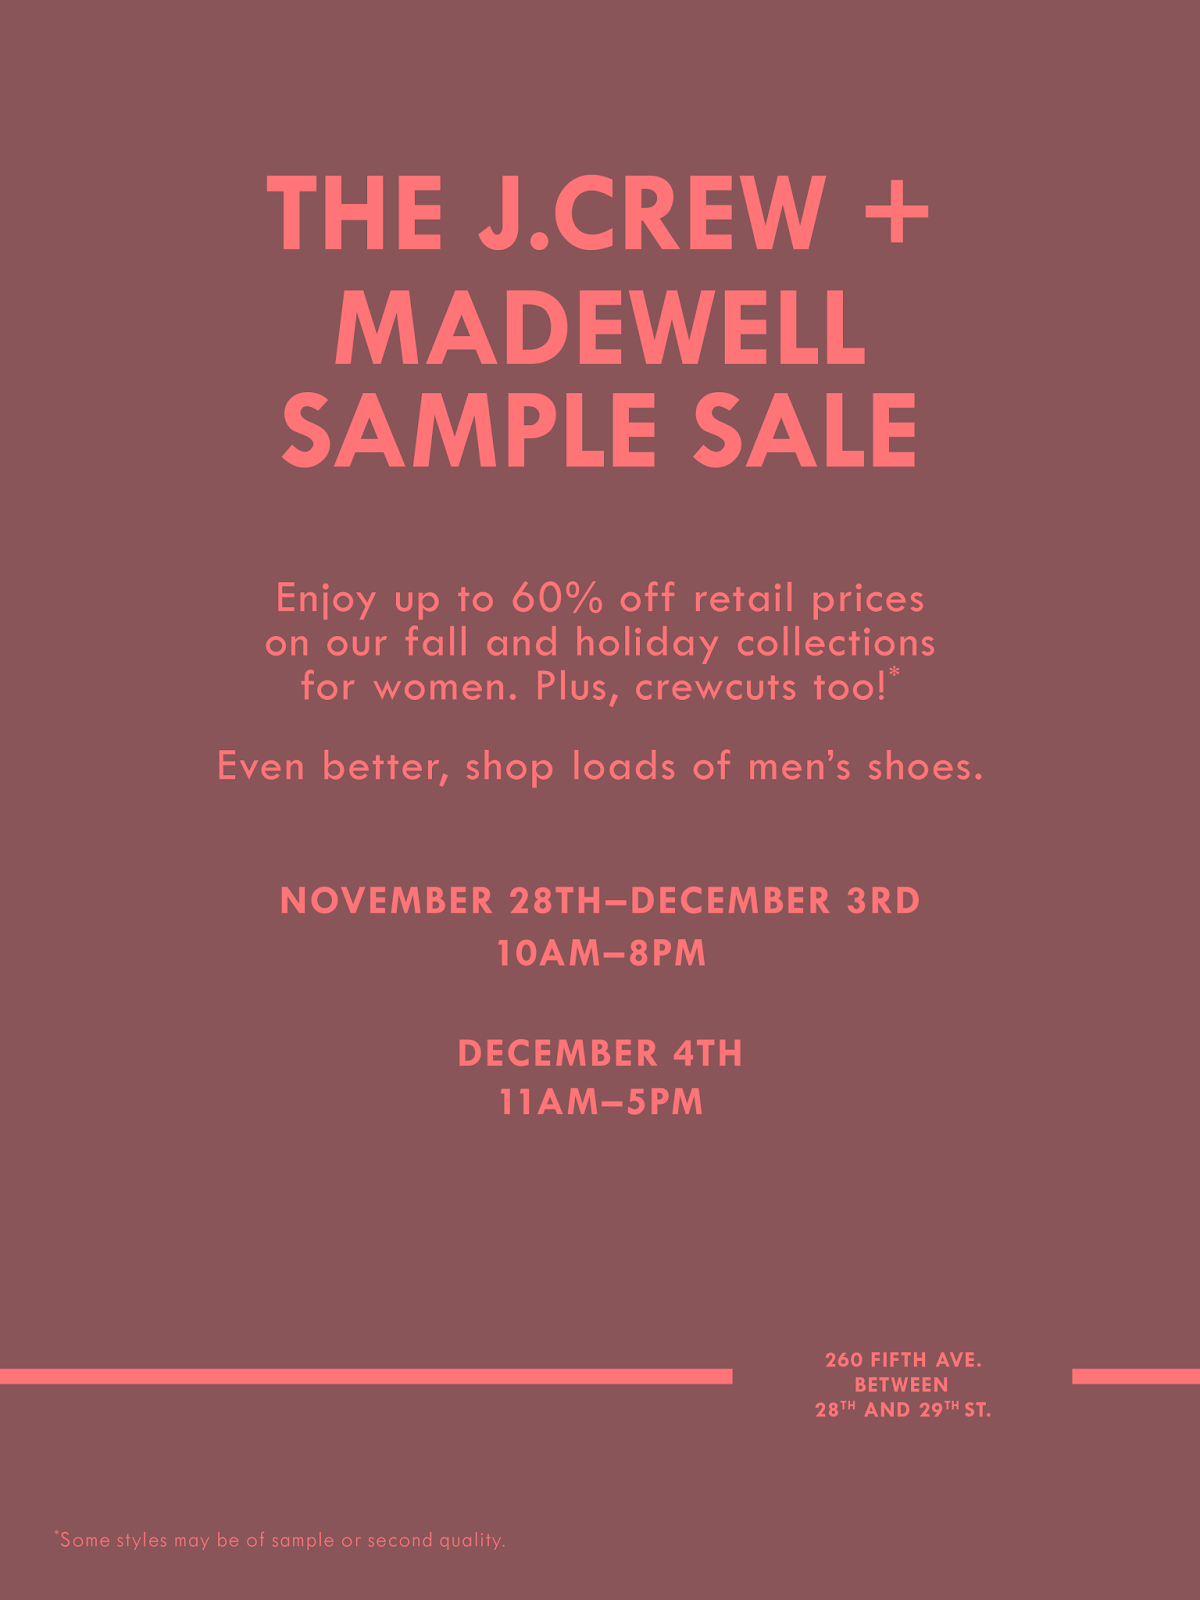 8c02ae0ca64 fashionably petite  J.Crew + Madewell Sample Sale - 11 28 - 12 4 16